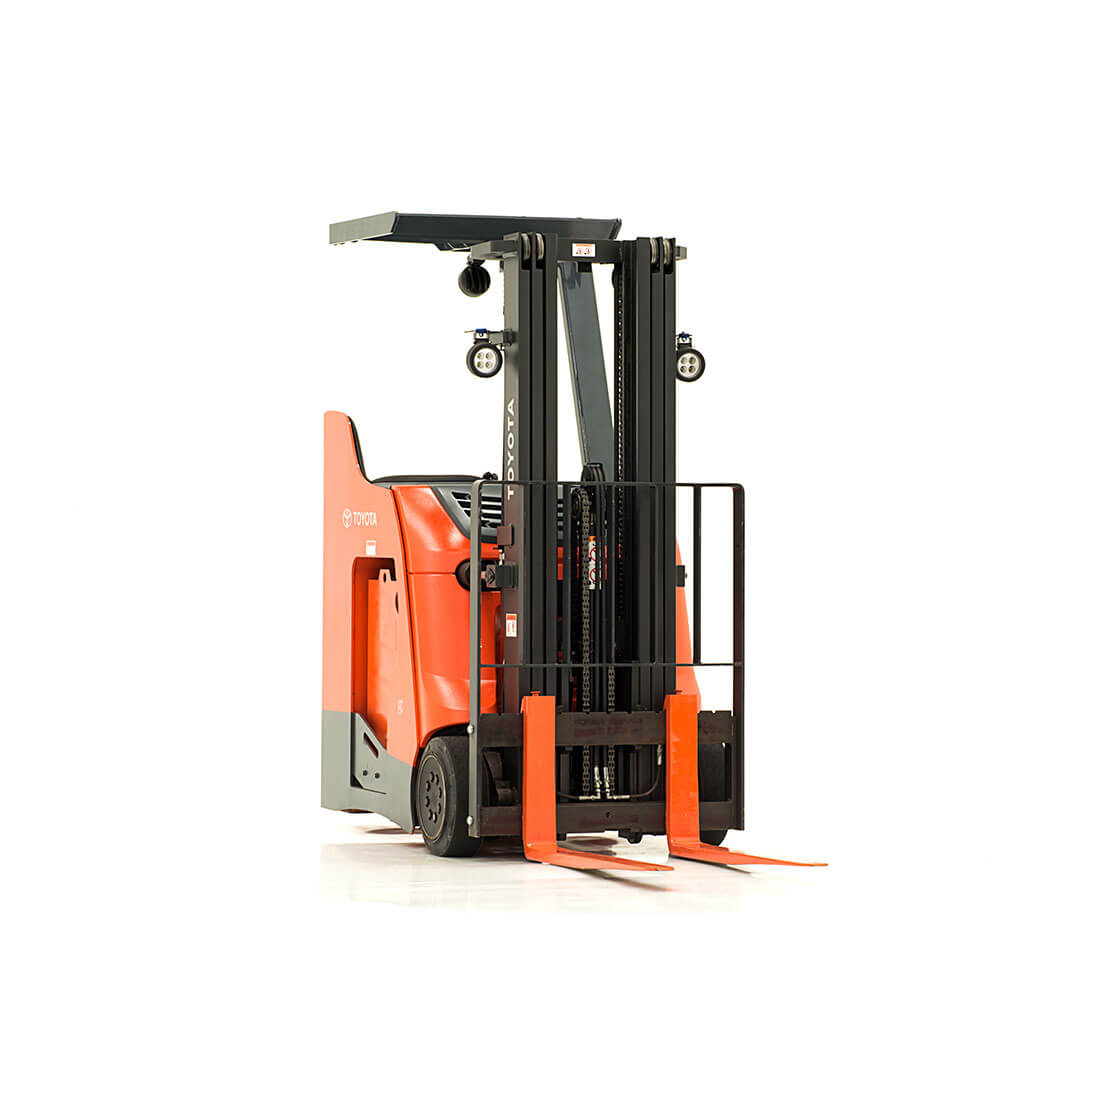 Stand-Up Rider Forklift front view 1